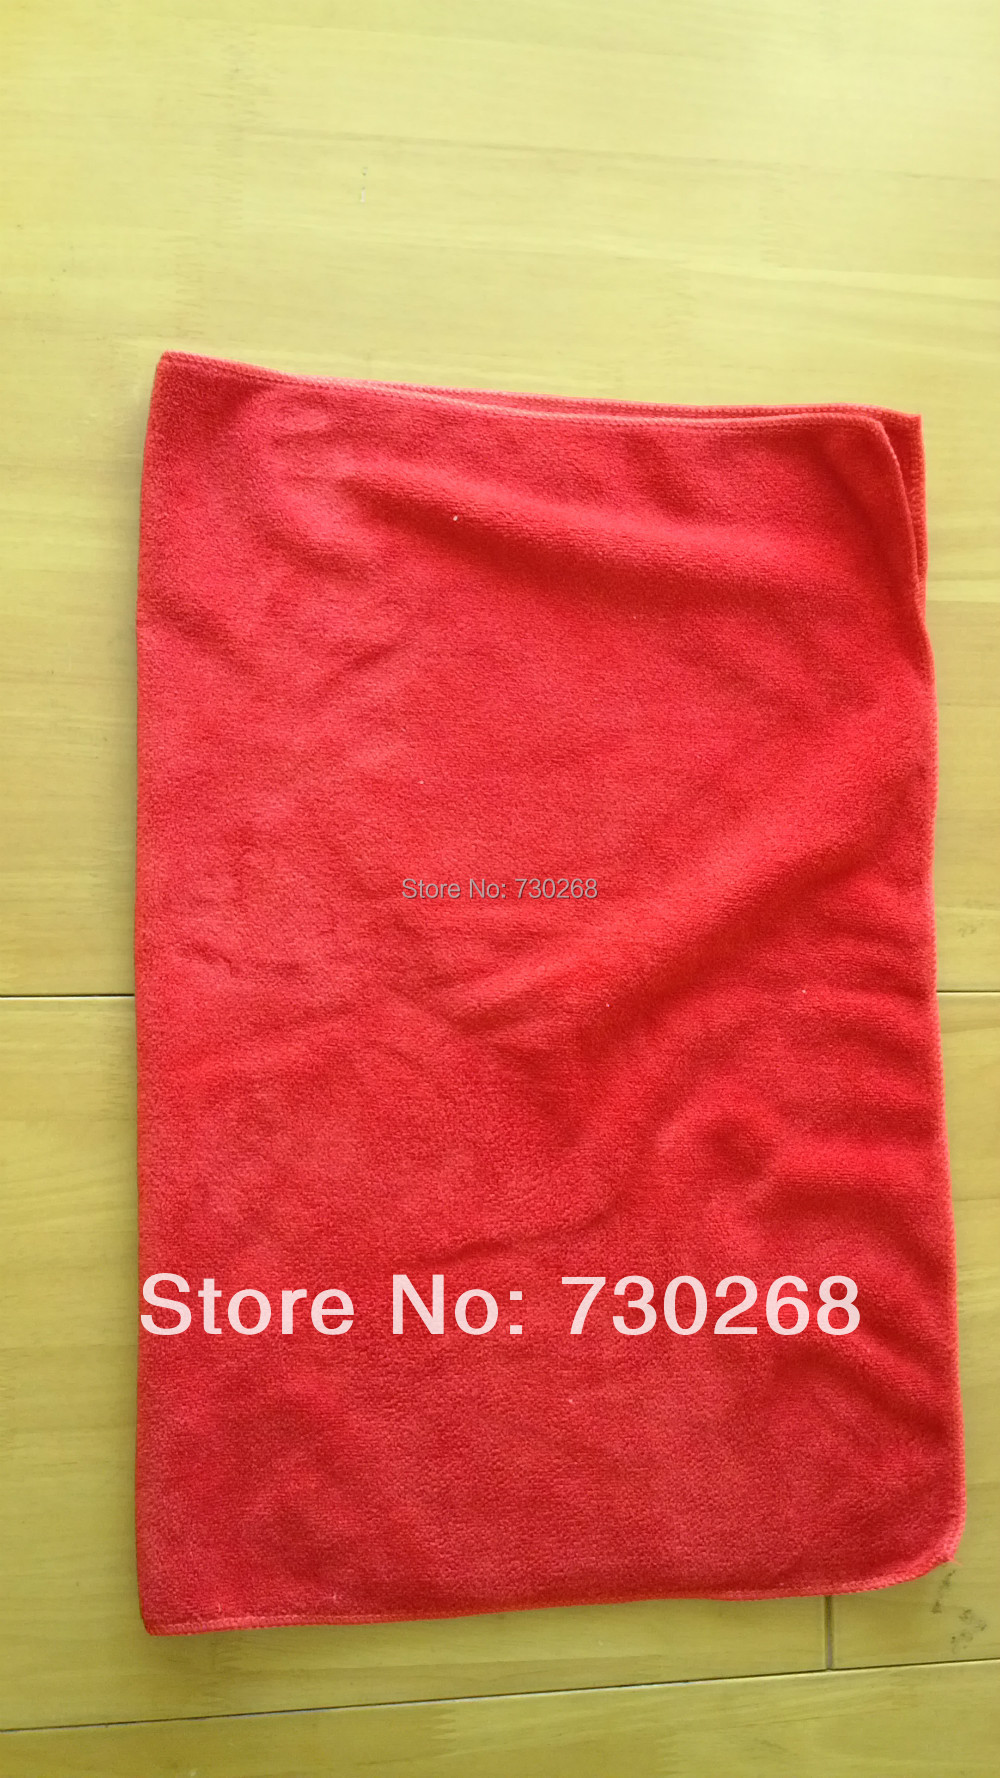 Free Ship Wholesale Microfiber Cleaning Towel 33x66cm 360gsm Polyester Towels Car Cleaning Cloth Hair Drying Magic Towel(China (Mainland))